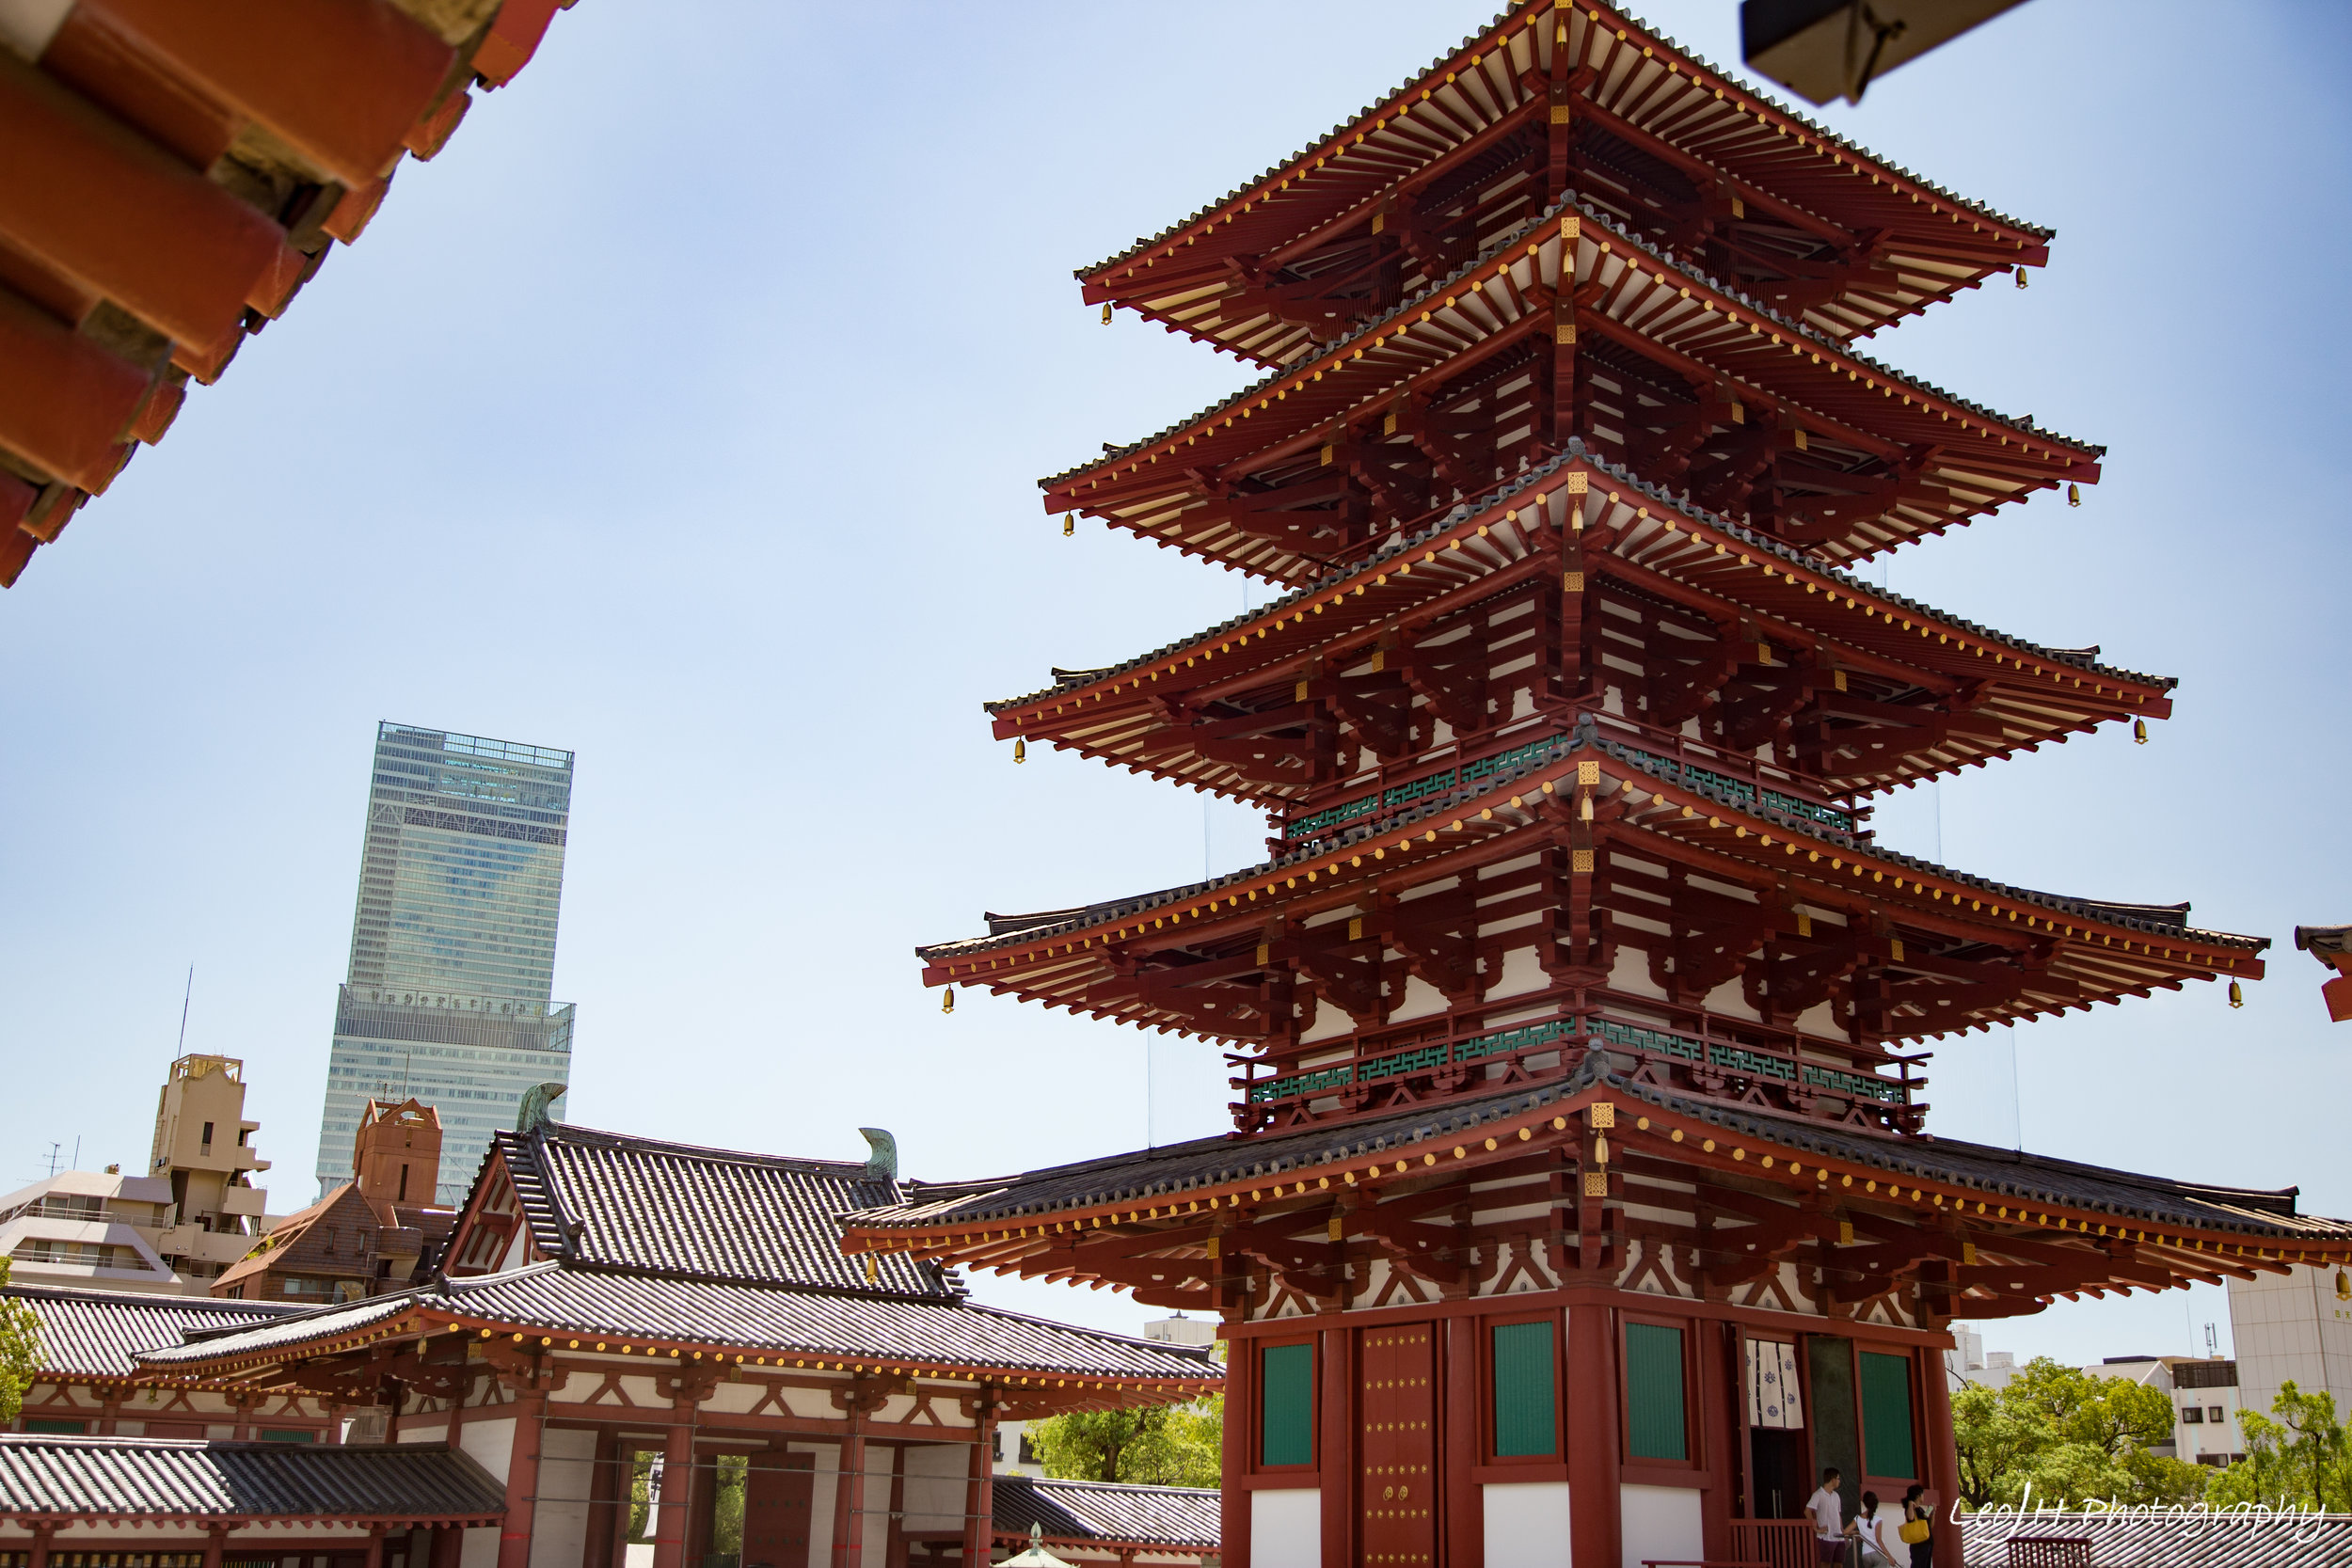 The center of Shittennoji Temple, with the 5-storey pagoda